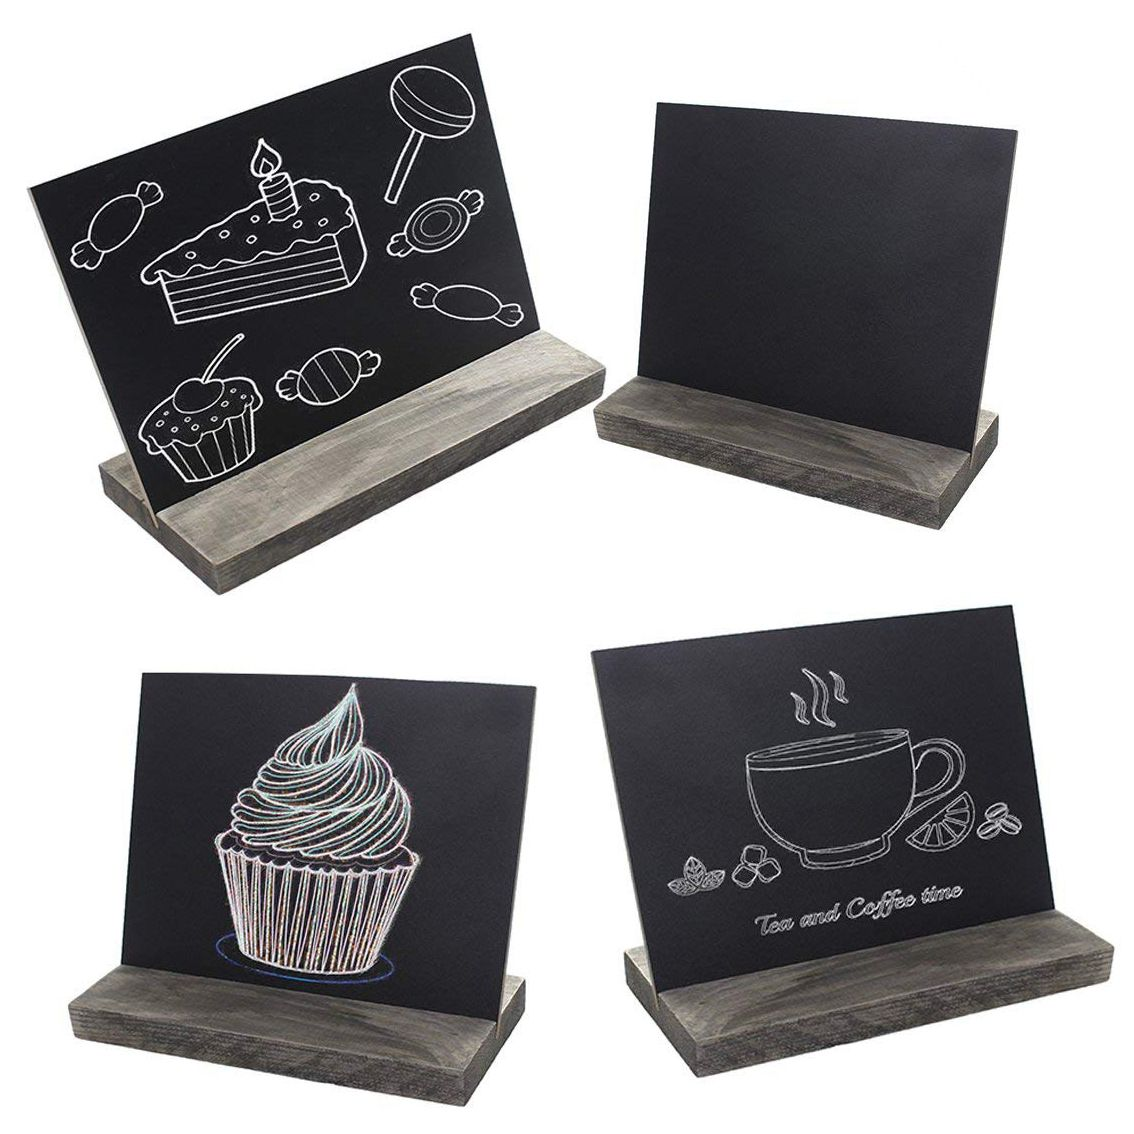 PPYY NEW -15.3x12.7x4.6cm Mini Tabletop Chalkboard Signs With Rustic Style Wood Base Stands, Set Of 4,Include 3x Chalks